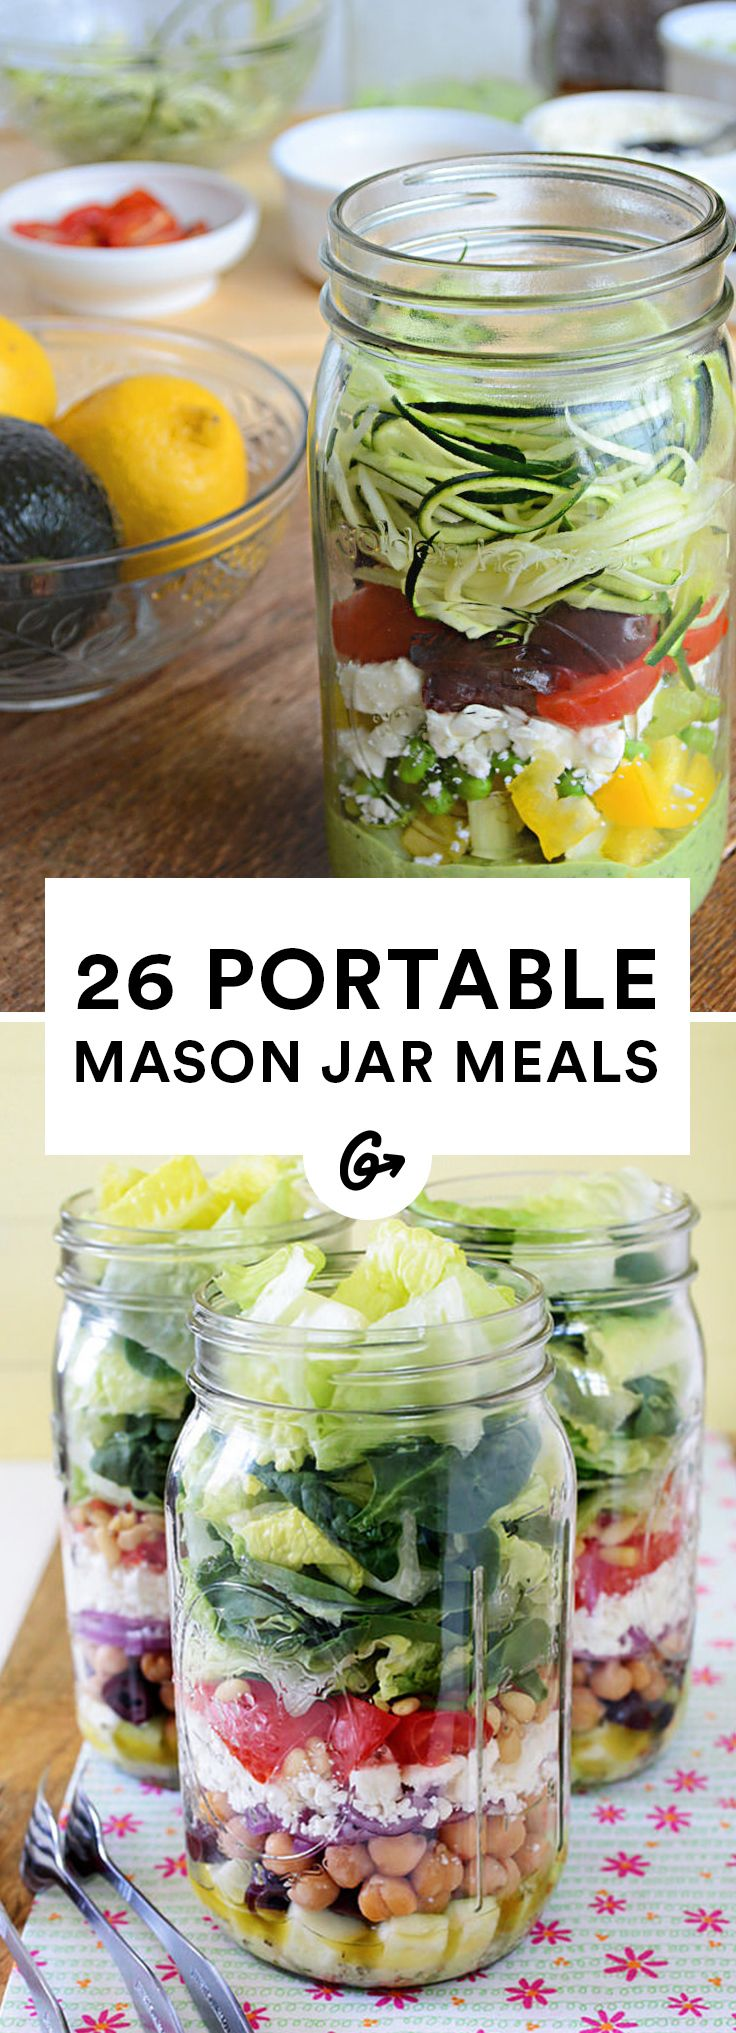 Make it easy to eat portion-control meals on the go. Plus, some of these…